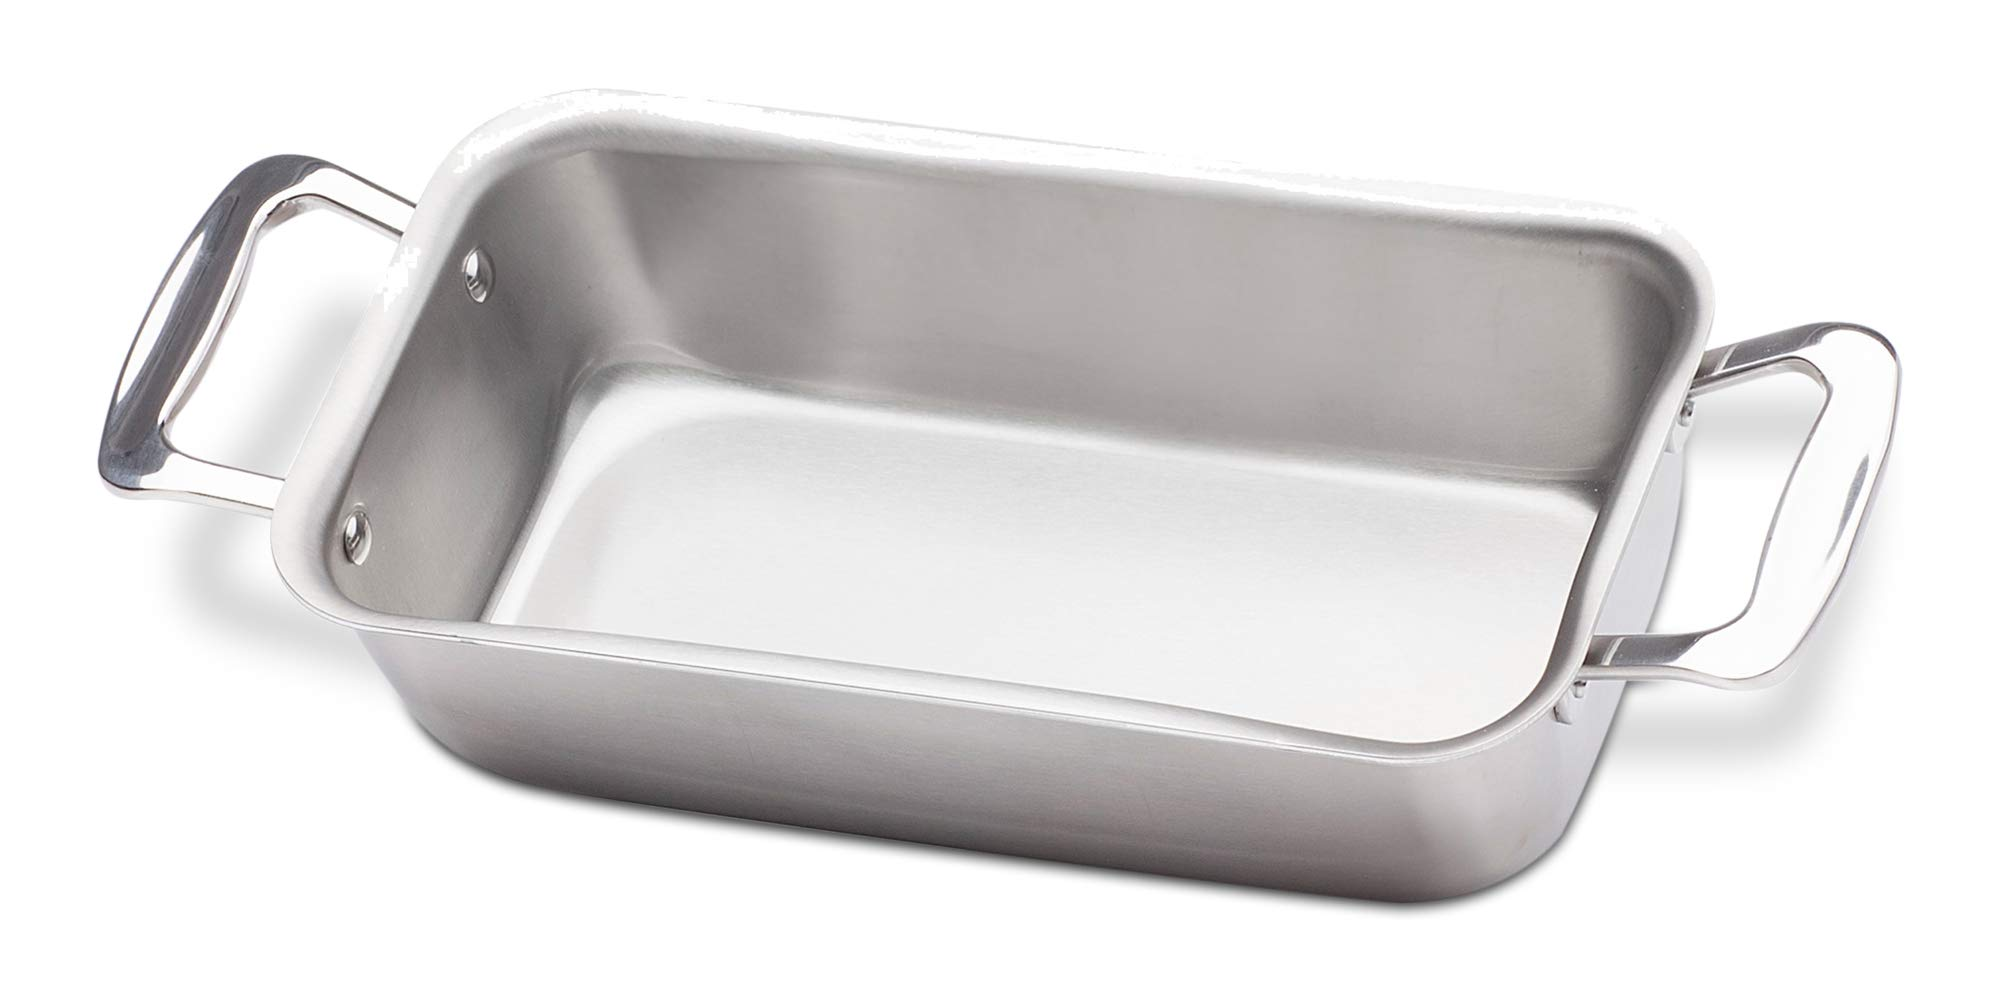 360 Stainless Steel Loaf Pan, Handcrafted in the USA, 5 Ply, Surgical Grade Stainless Bakeware, Dishwasher Safe, Professional Grade, Use as Baking Pan, Roasting Pan  (11''x6''x3'')